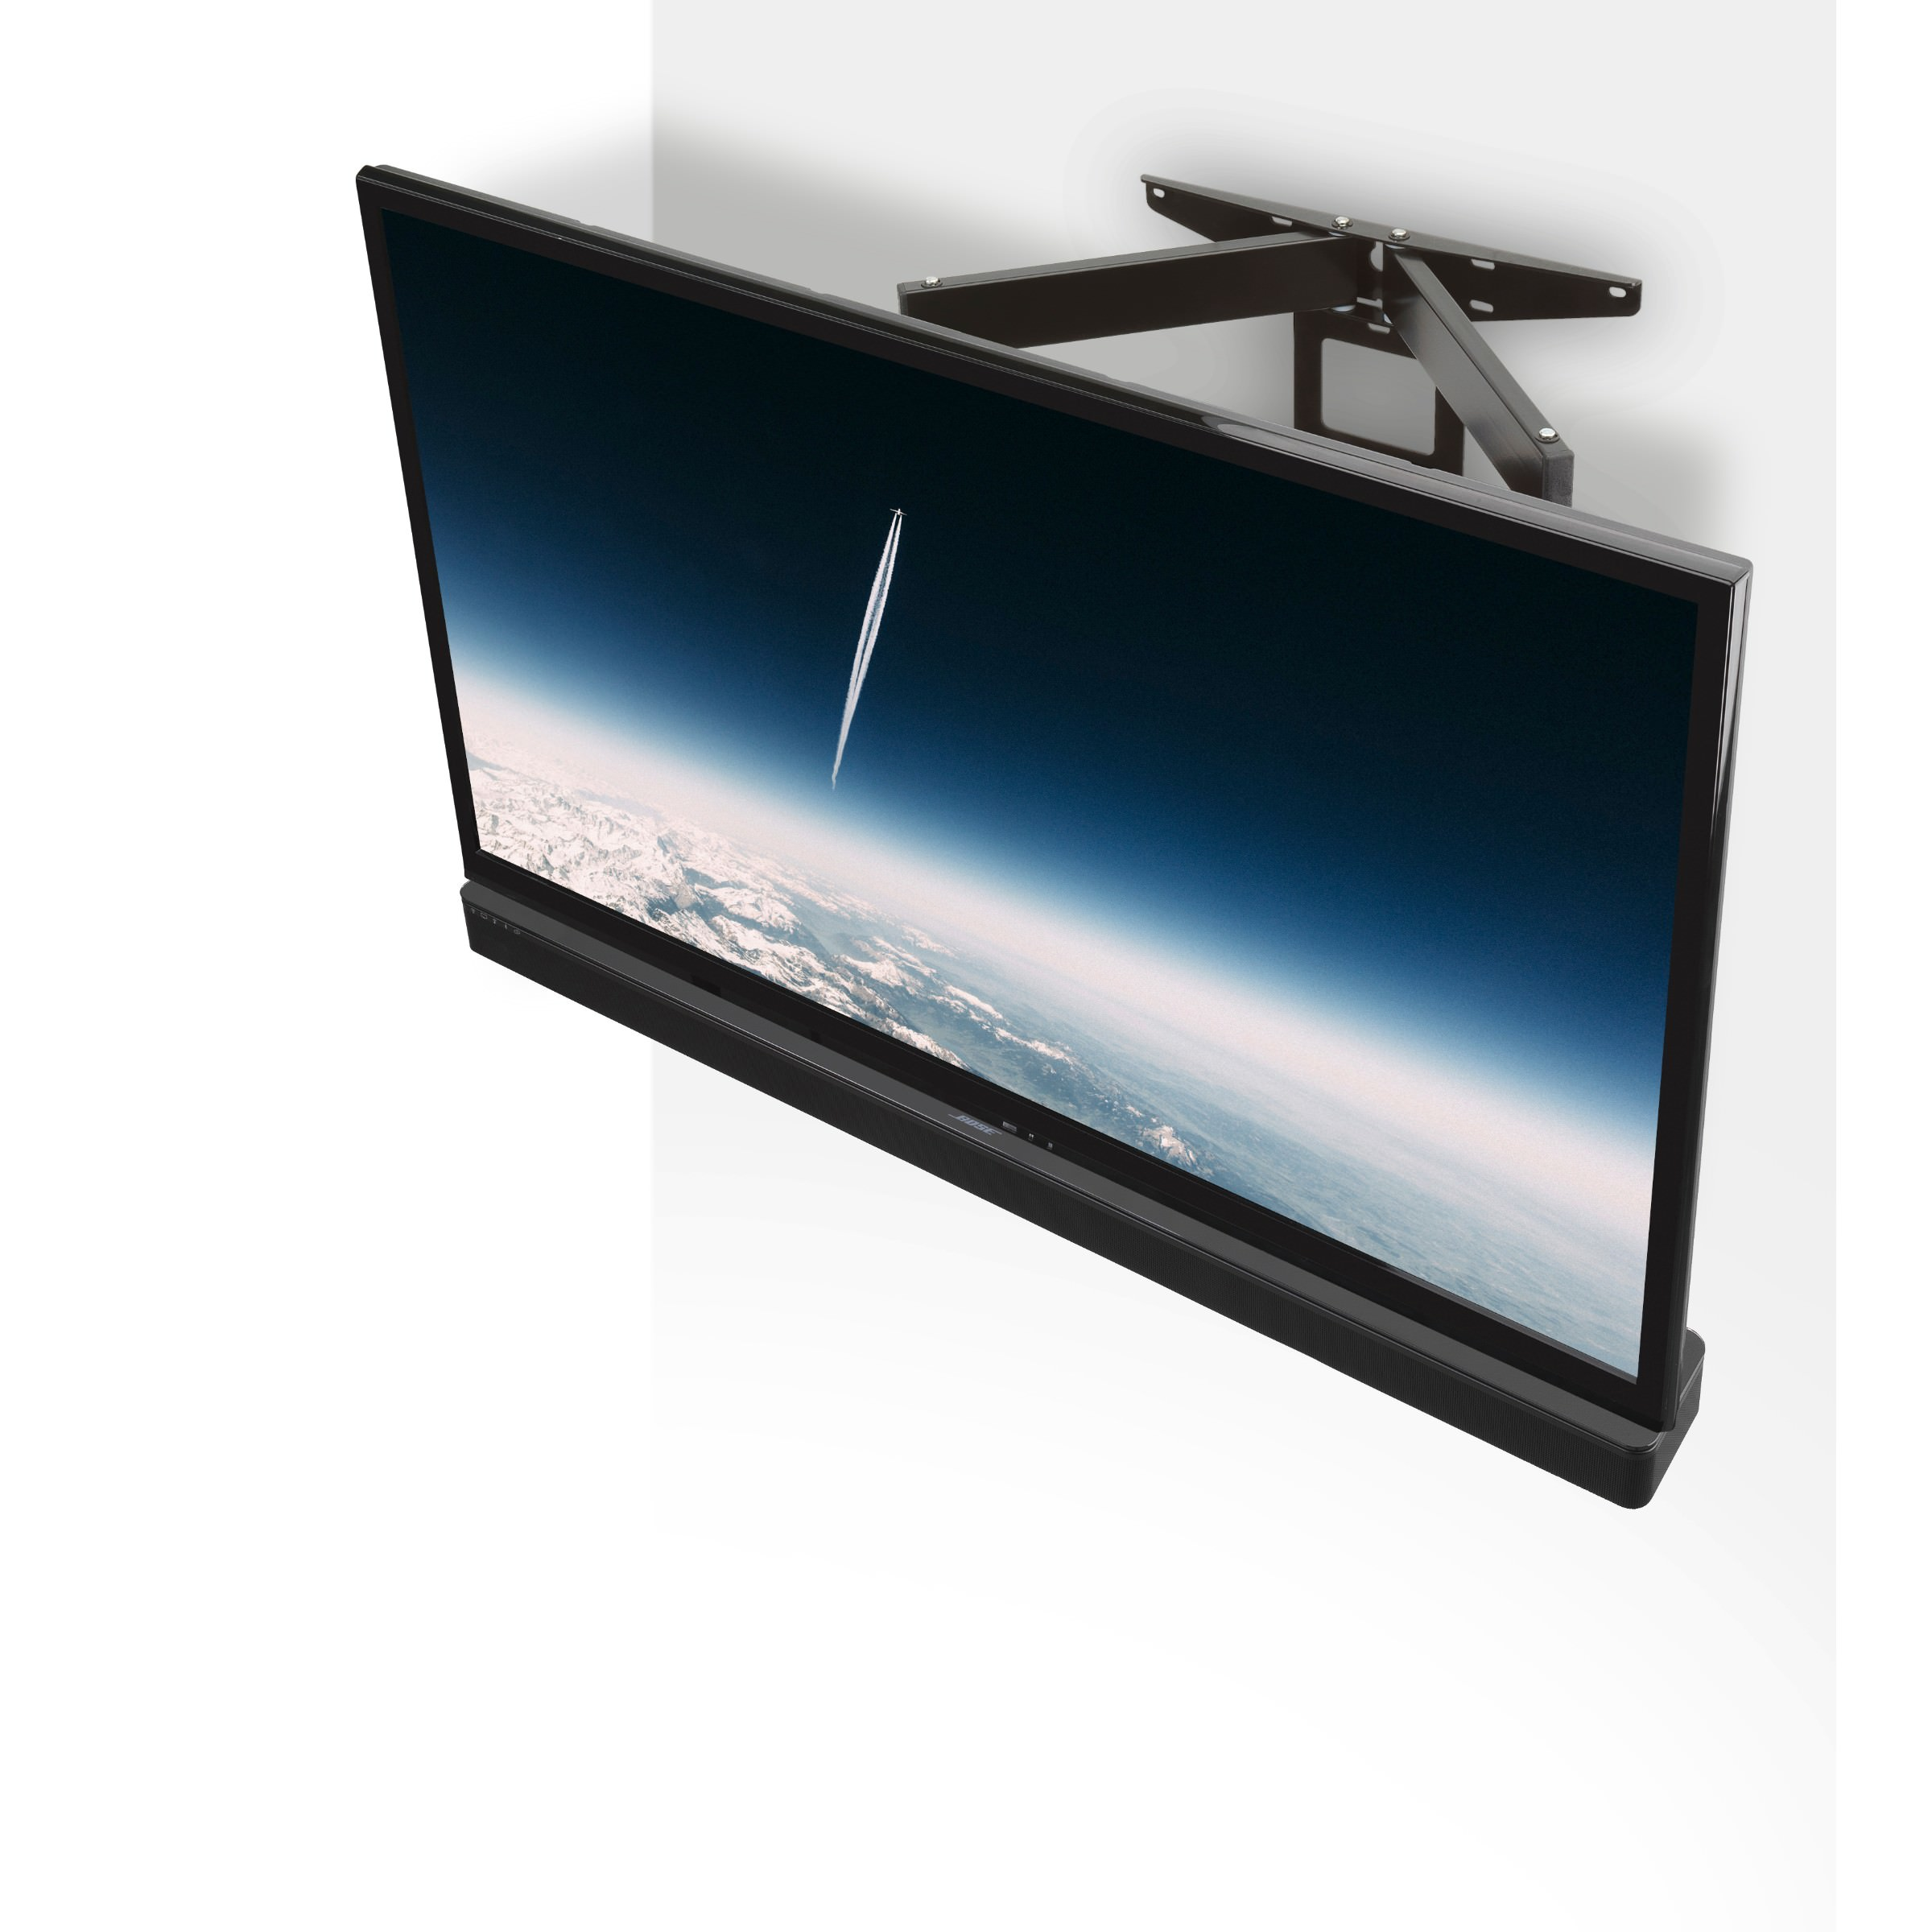 Bose SoundTouch 300 draaibare tv muurbeugel 4